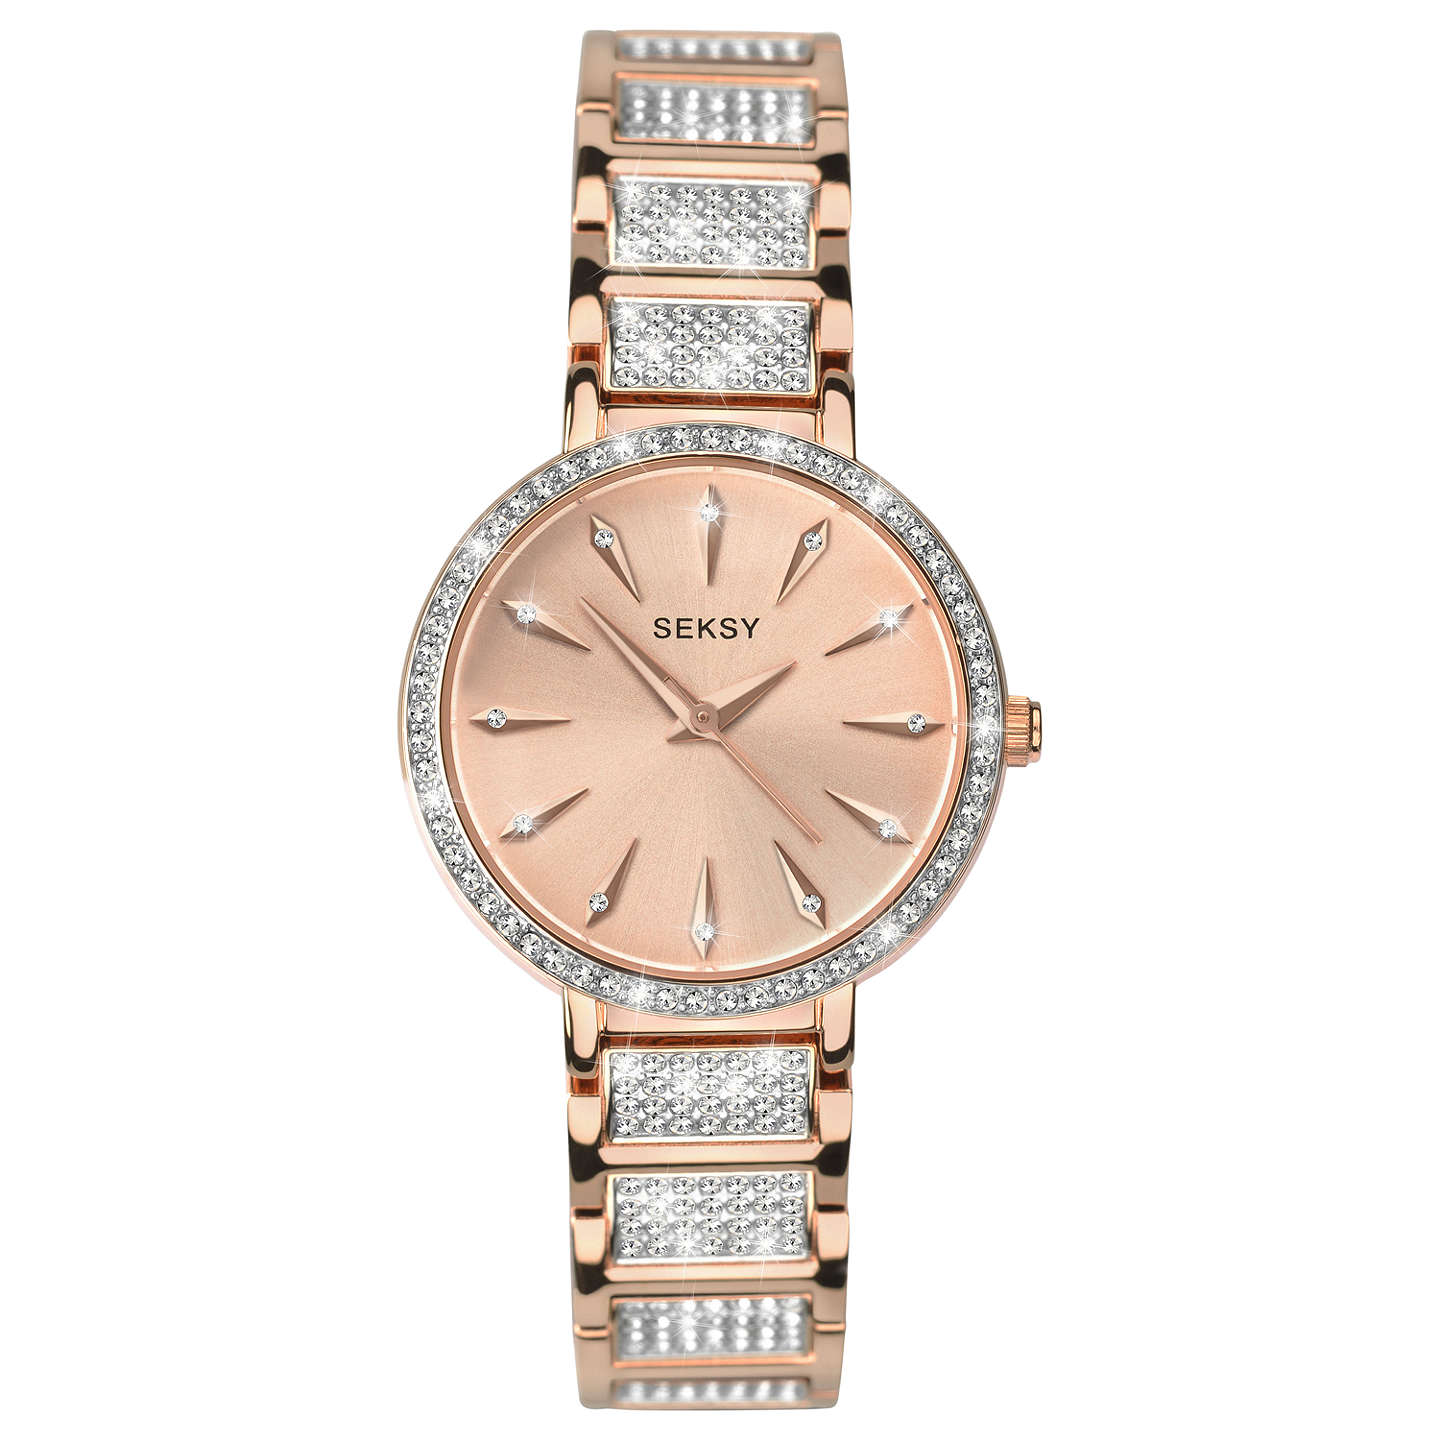 main seksy rose crystal buysekonda johnlewis watch gold rsp sekonda bracelet women pdp s watches at strap swarovski online